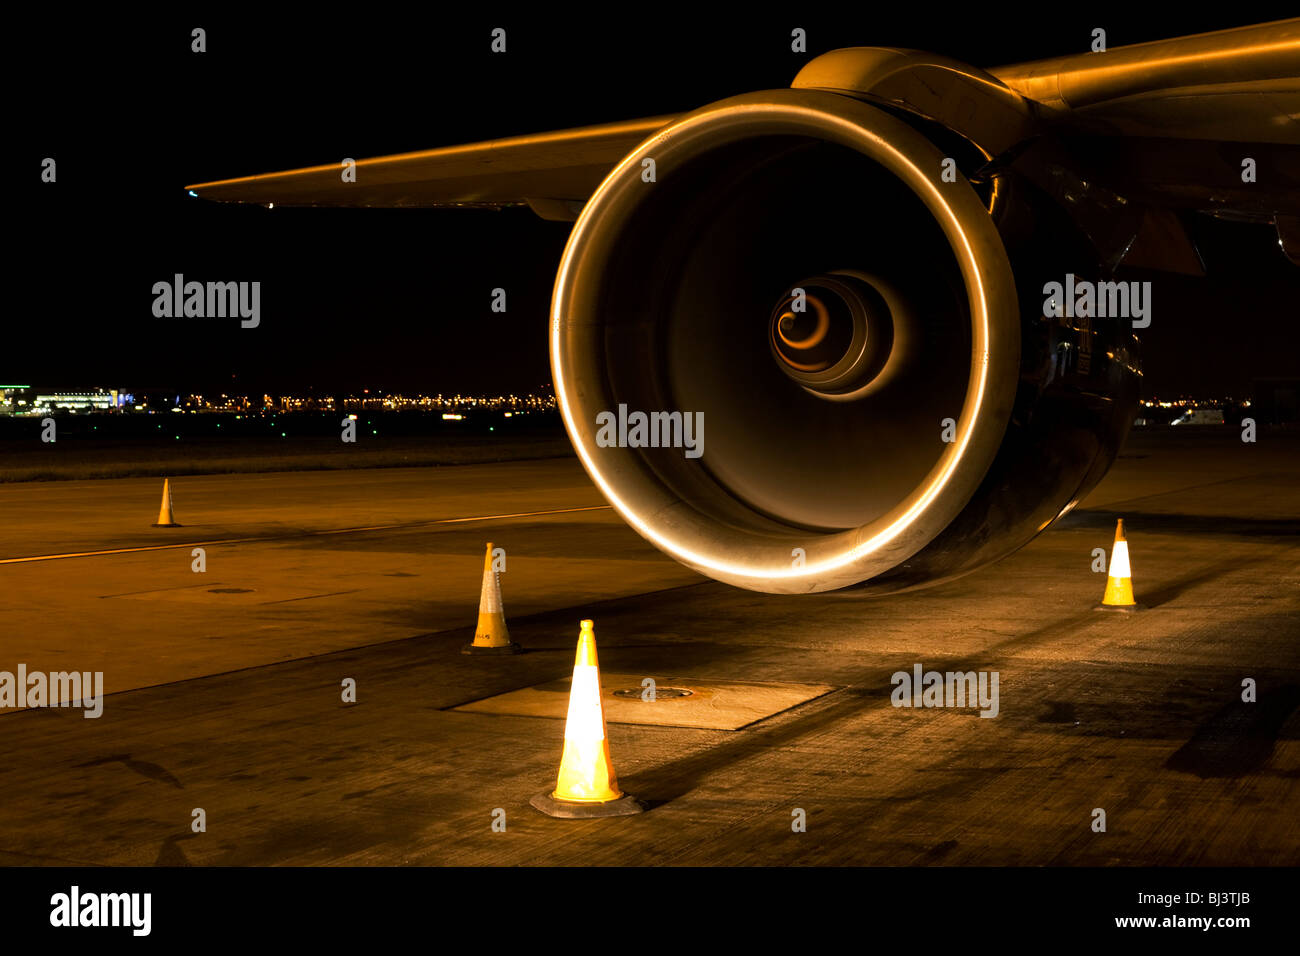 British Airways Boeing jet aircraft engine highlighted by headlights of an Heathrow airfield vehicle. - Stock Image